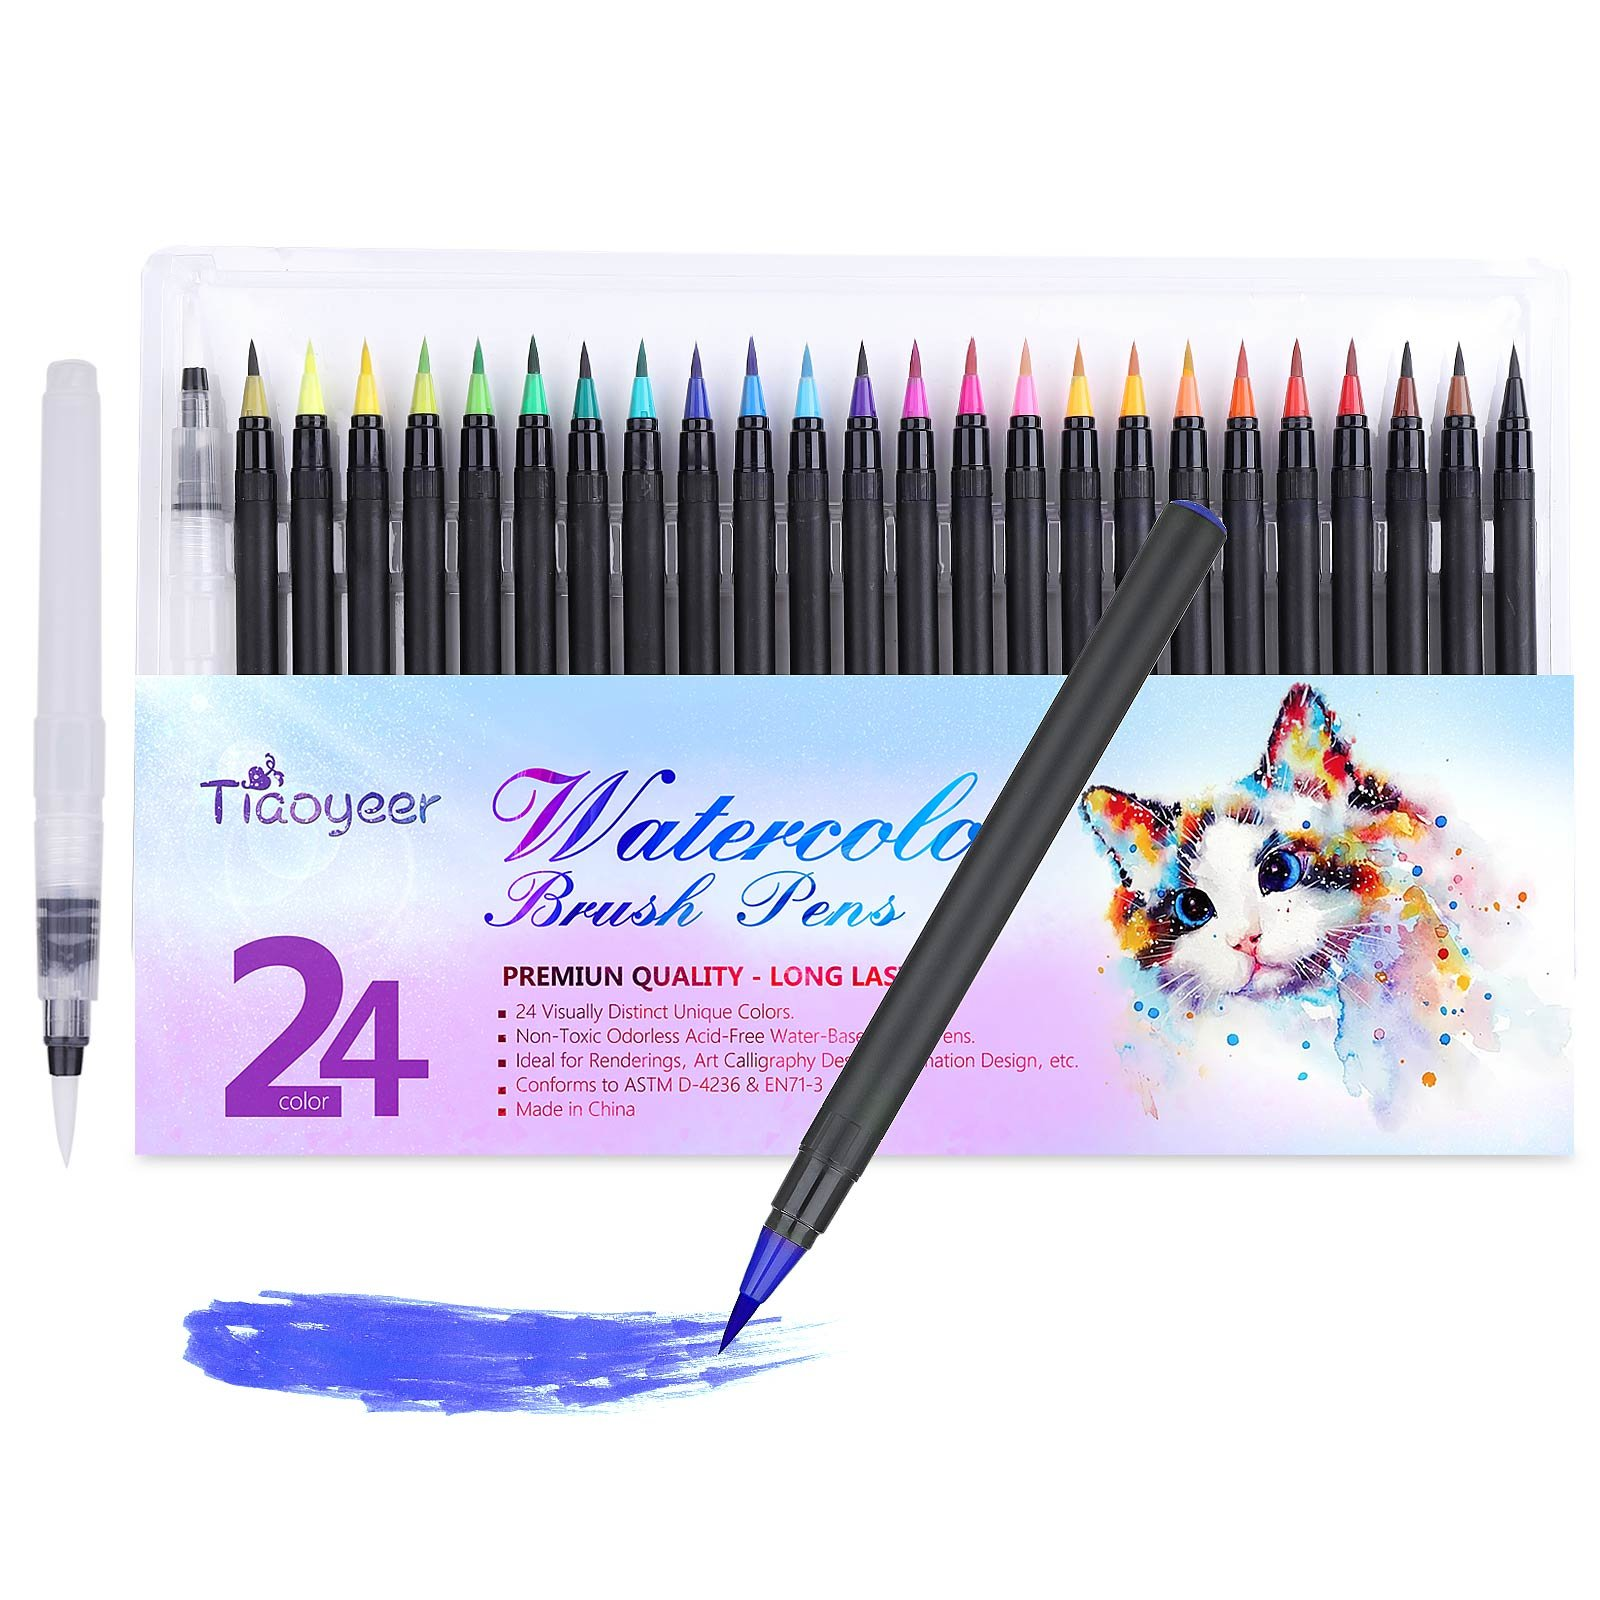 Watercolor Brush Pens Set - Tiaoyeer 24+ 1 Refillable Watercolor Paint Markers for Adult Coloring Books, Painting, Drawing, Comic, Calligraphy, Non Toxic Watercolor Paint, Safe for Kids